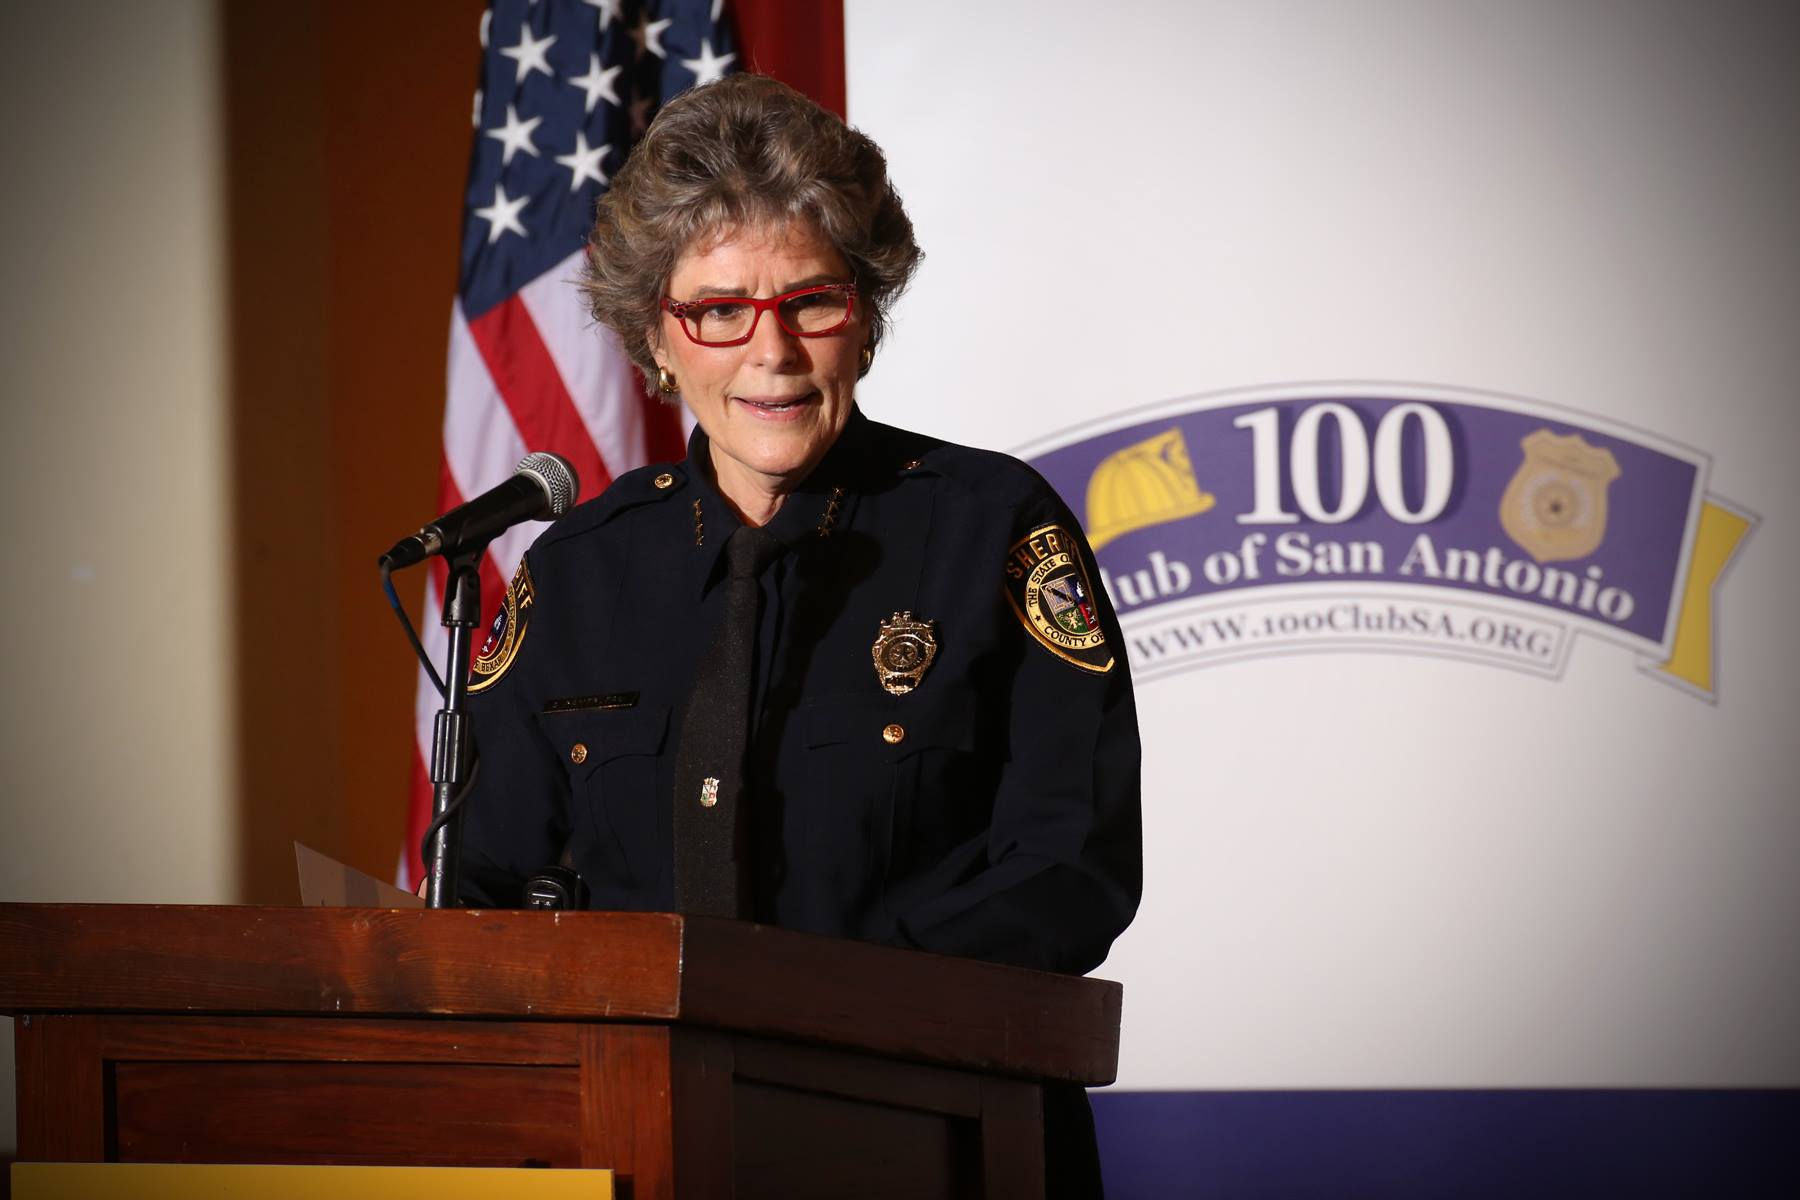 Bexar County Sheriff Susan Pamerleau (Bexar County Sheriff's Office/Facebook)